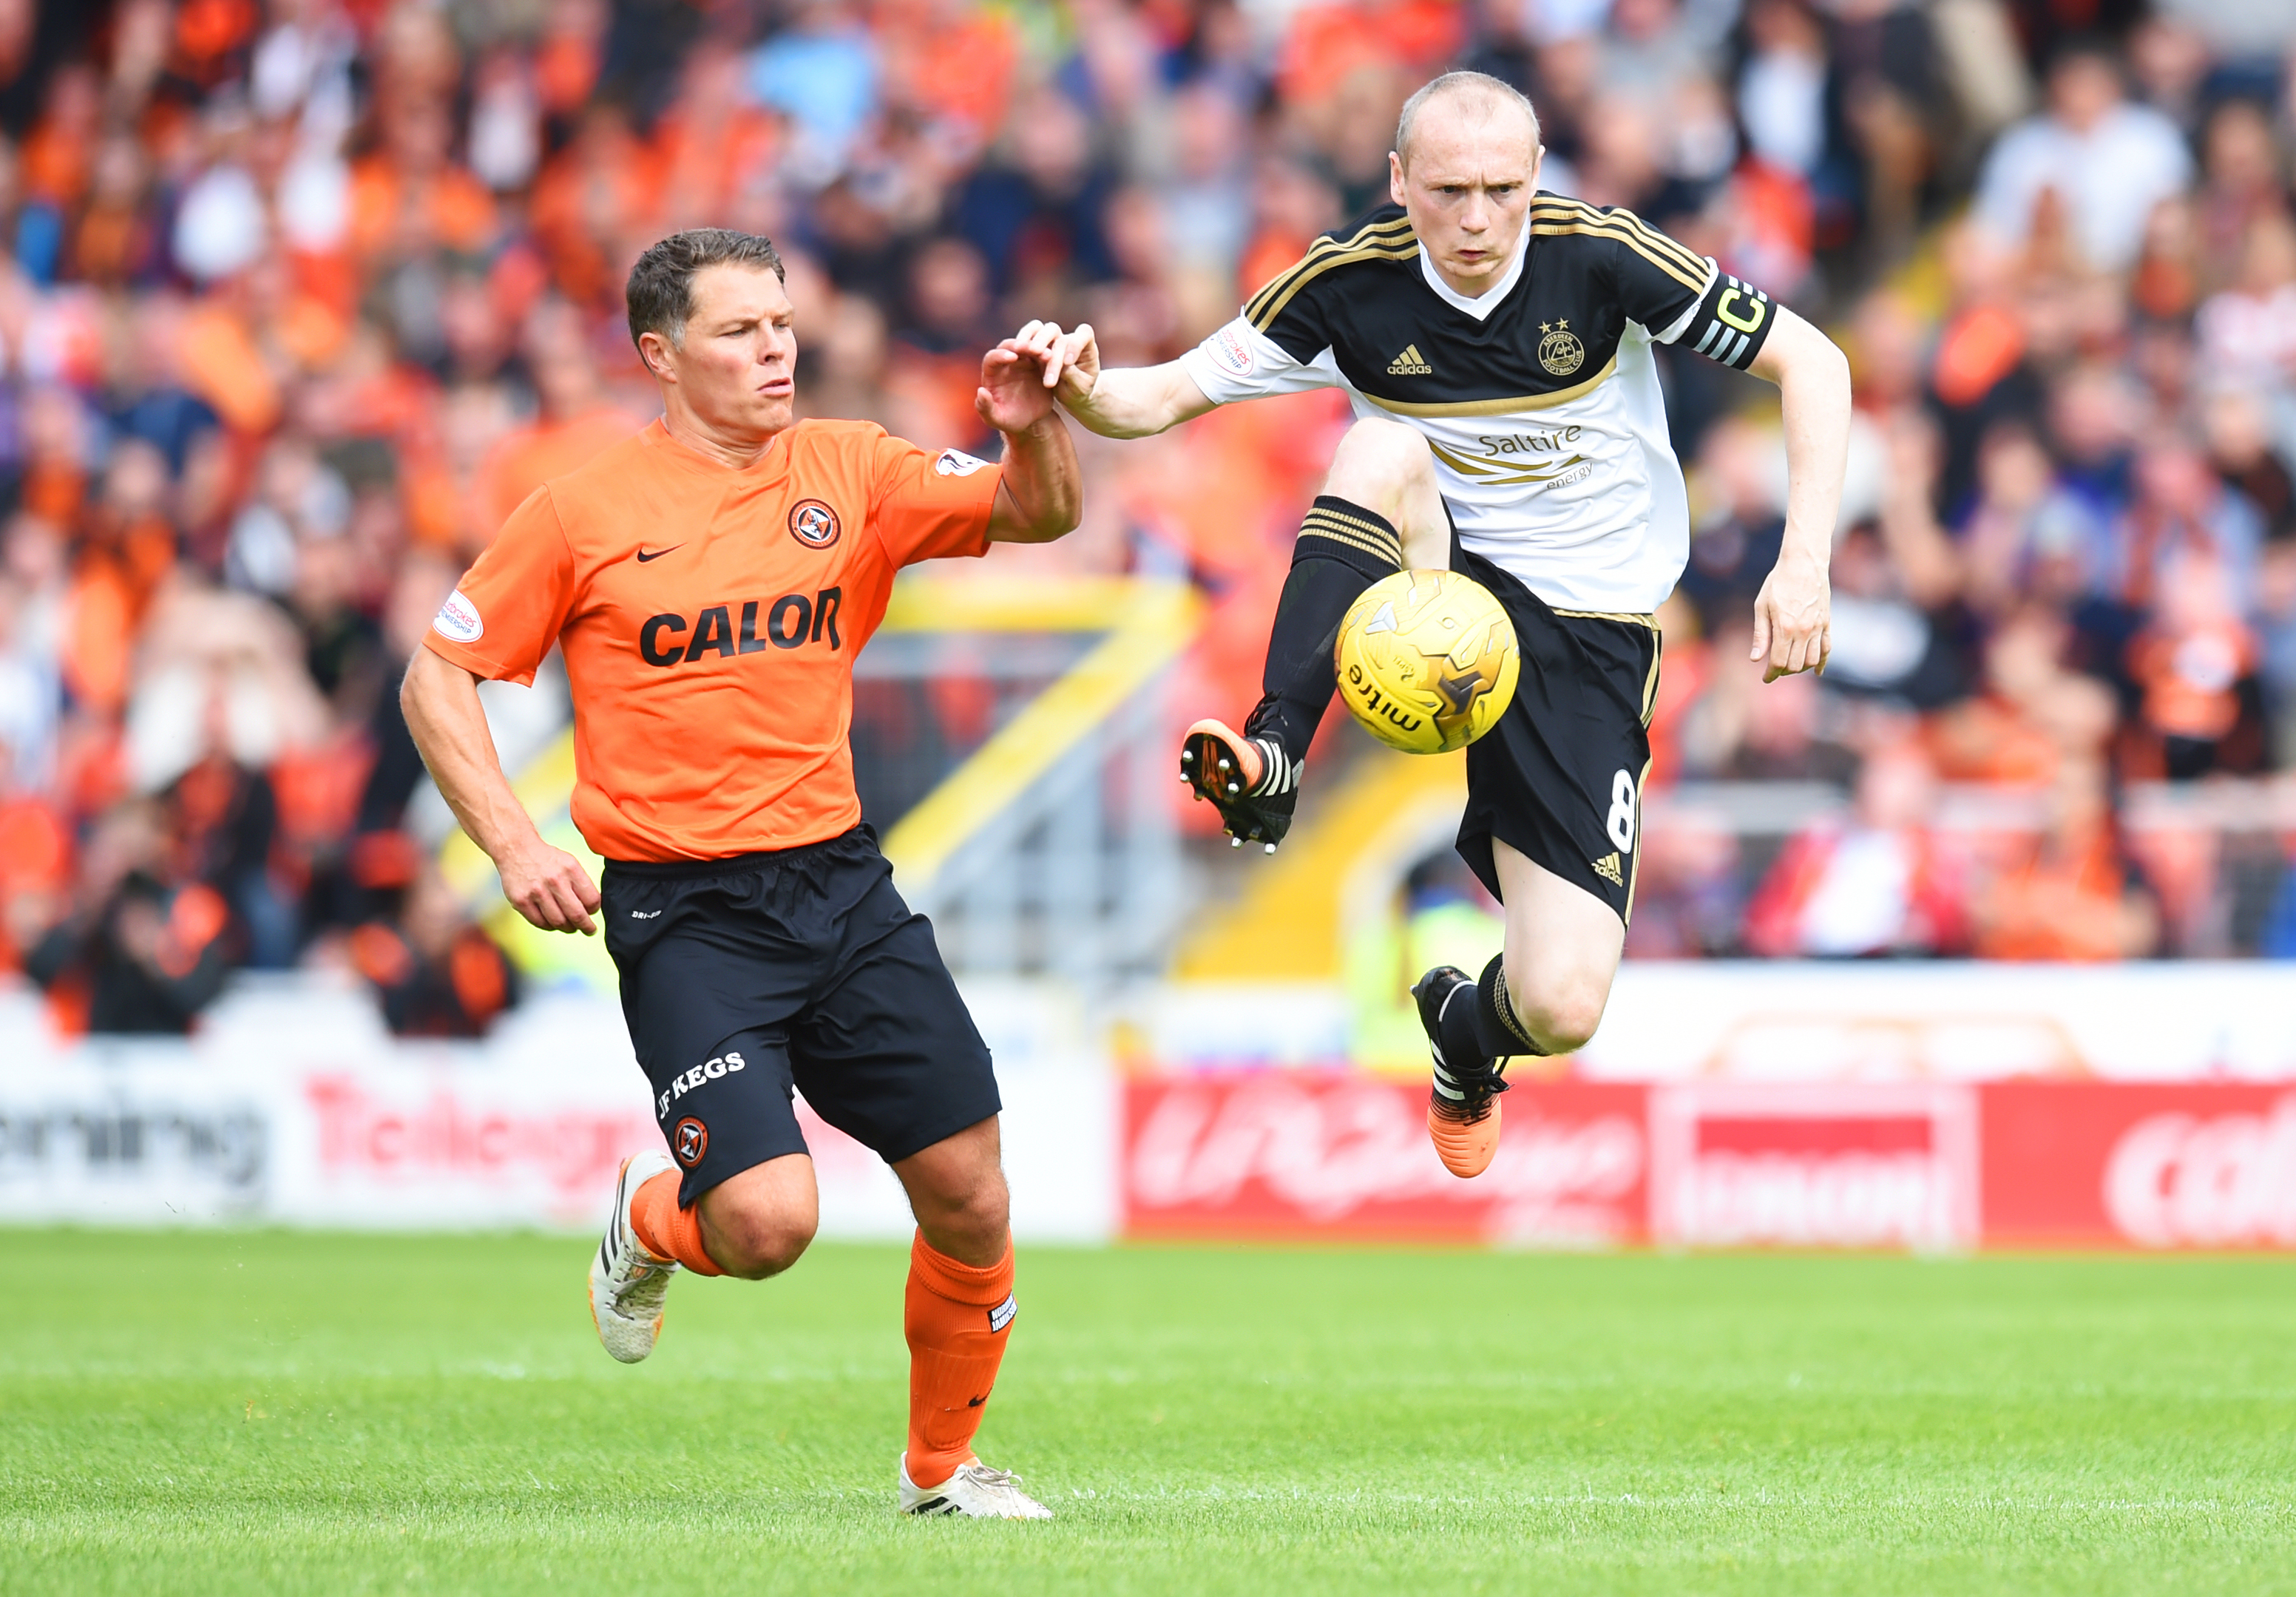 Willo Flood in action for Aberdeen against United. Now he looks set to be back tangerine.